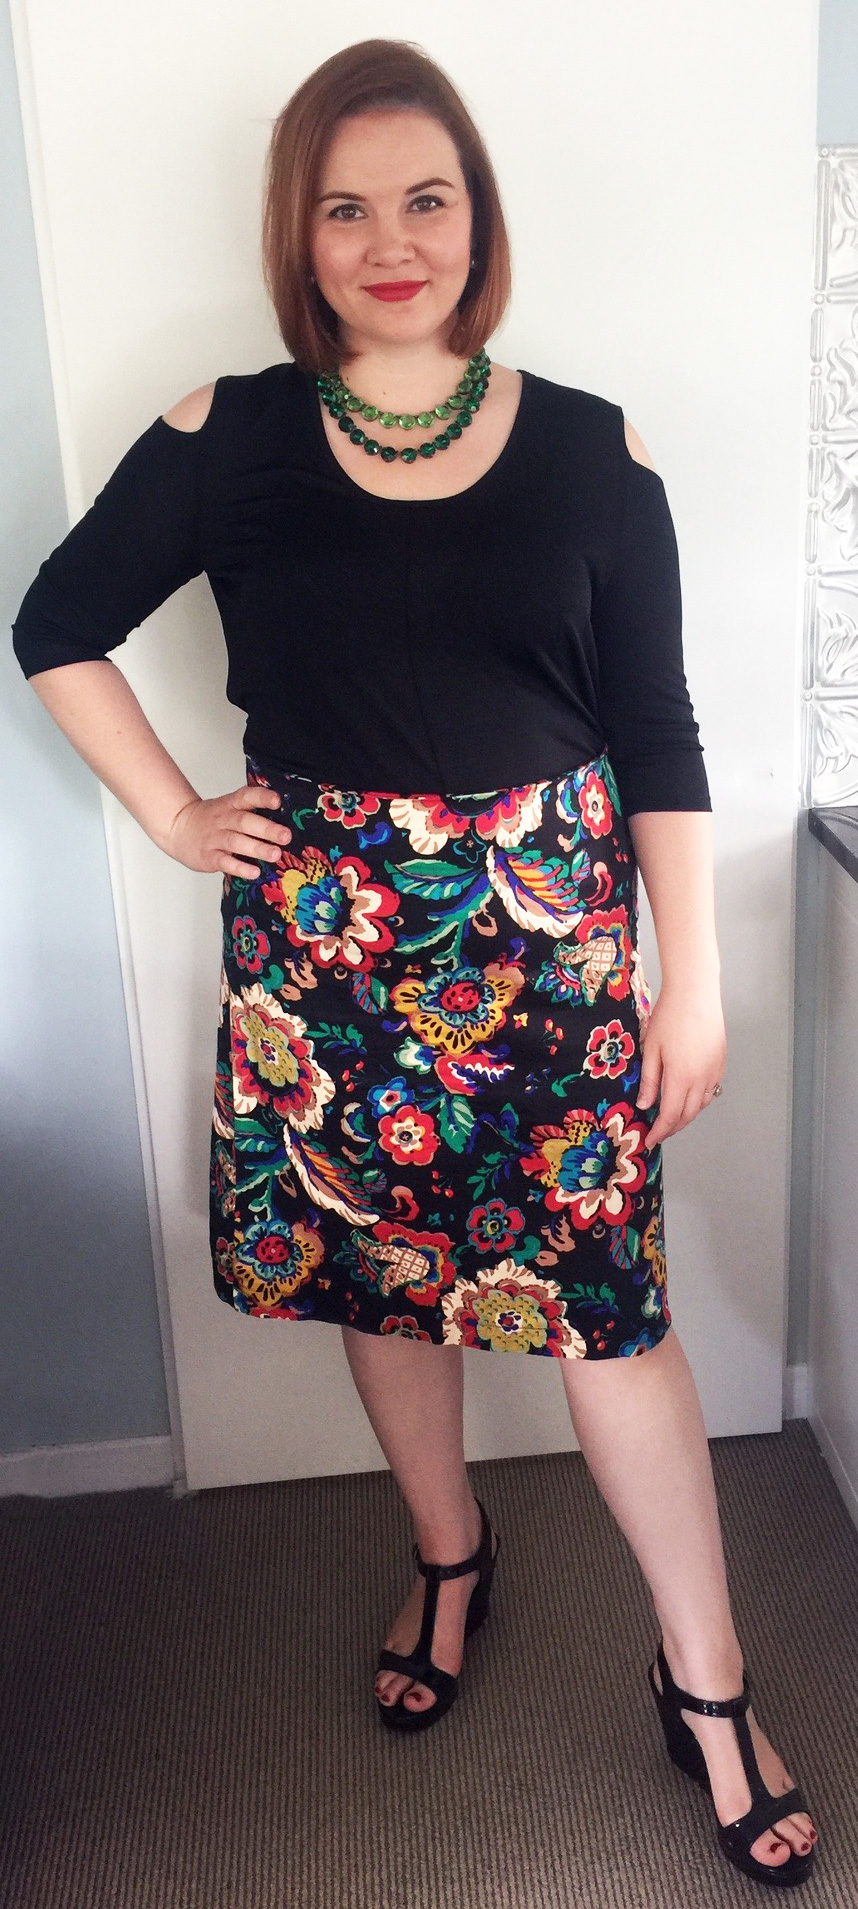 Witchery top, Jacki Peters skirt, Country Road shoes and Dames a la Mode necklaces.